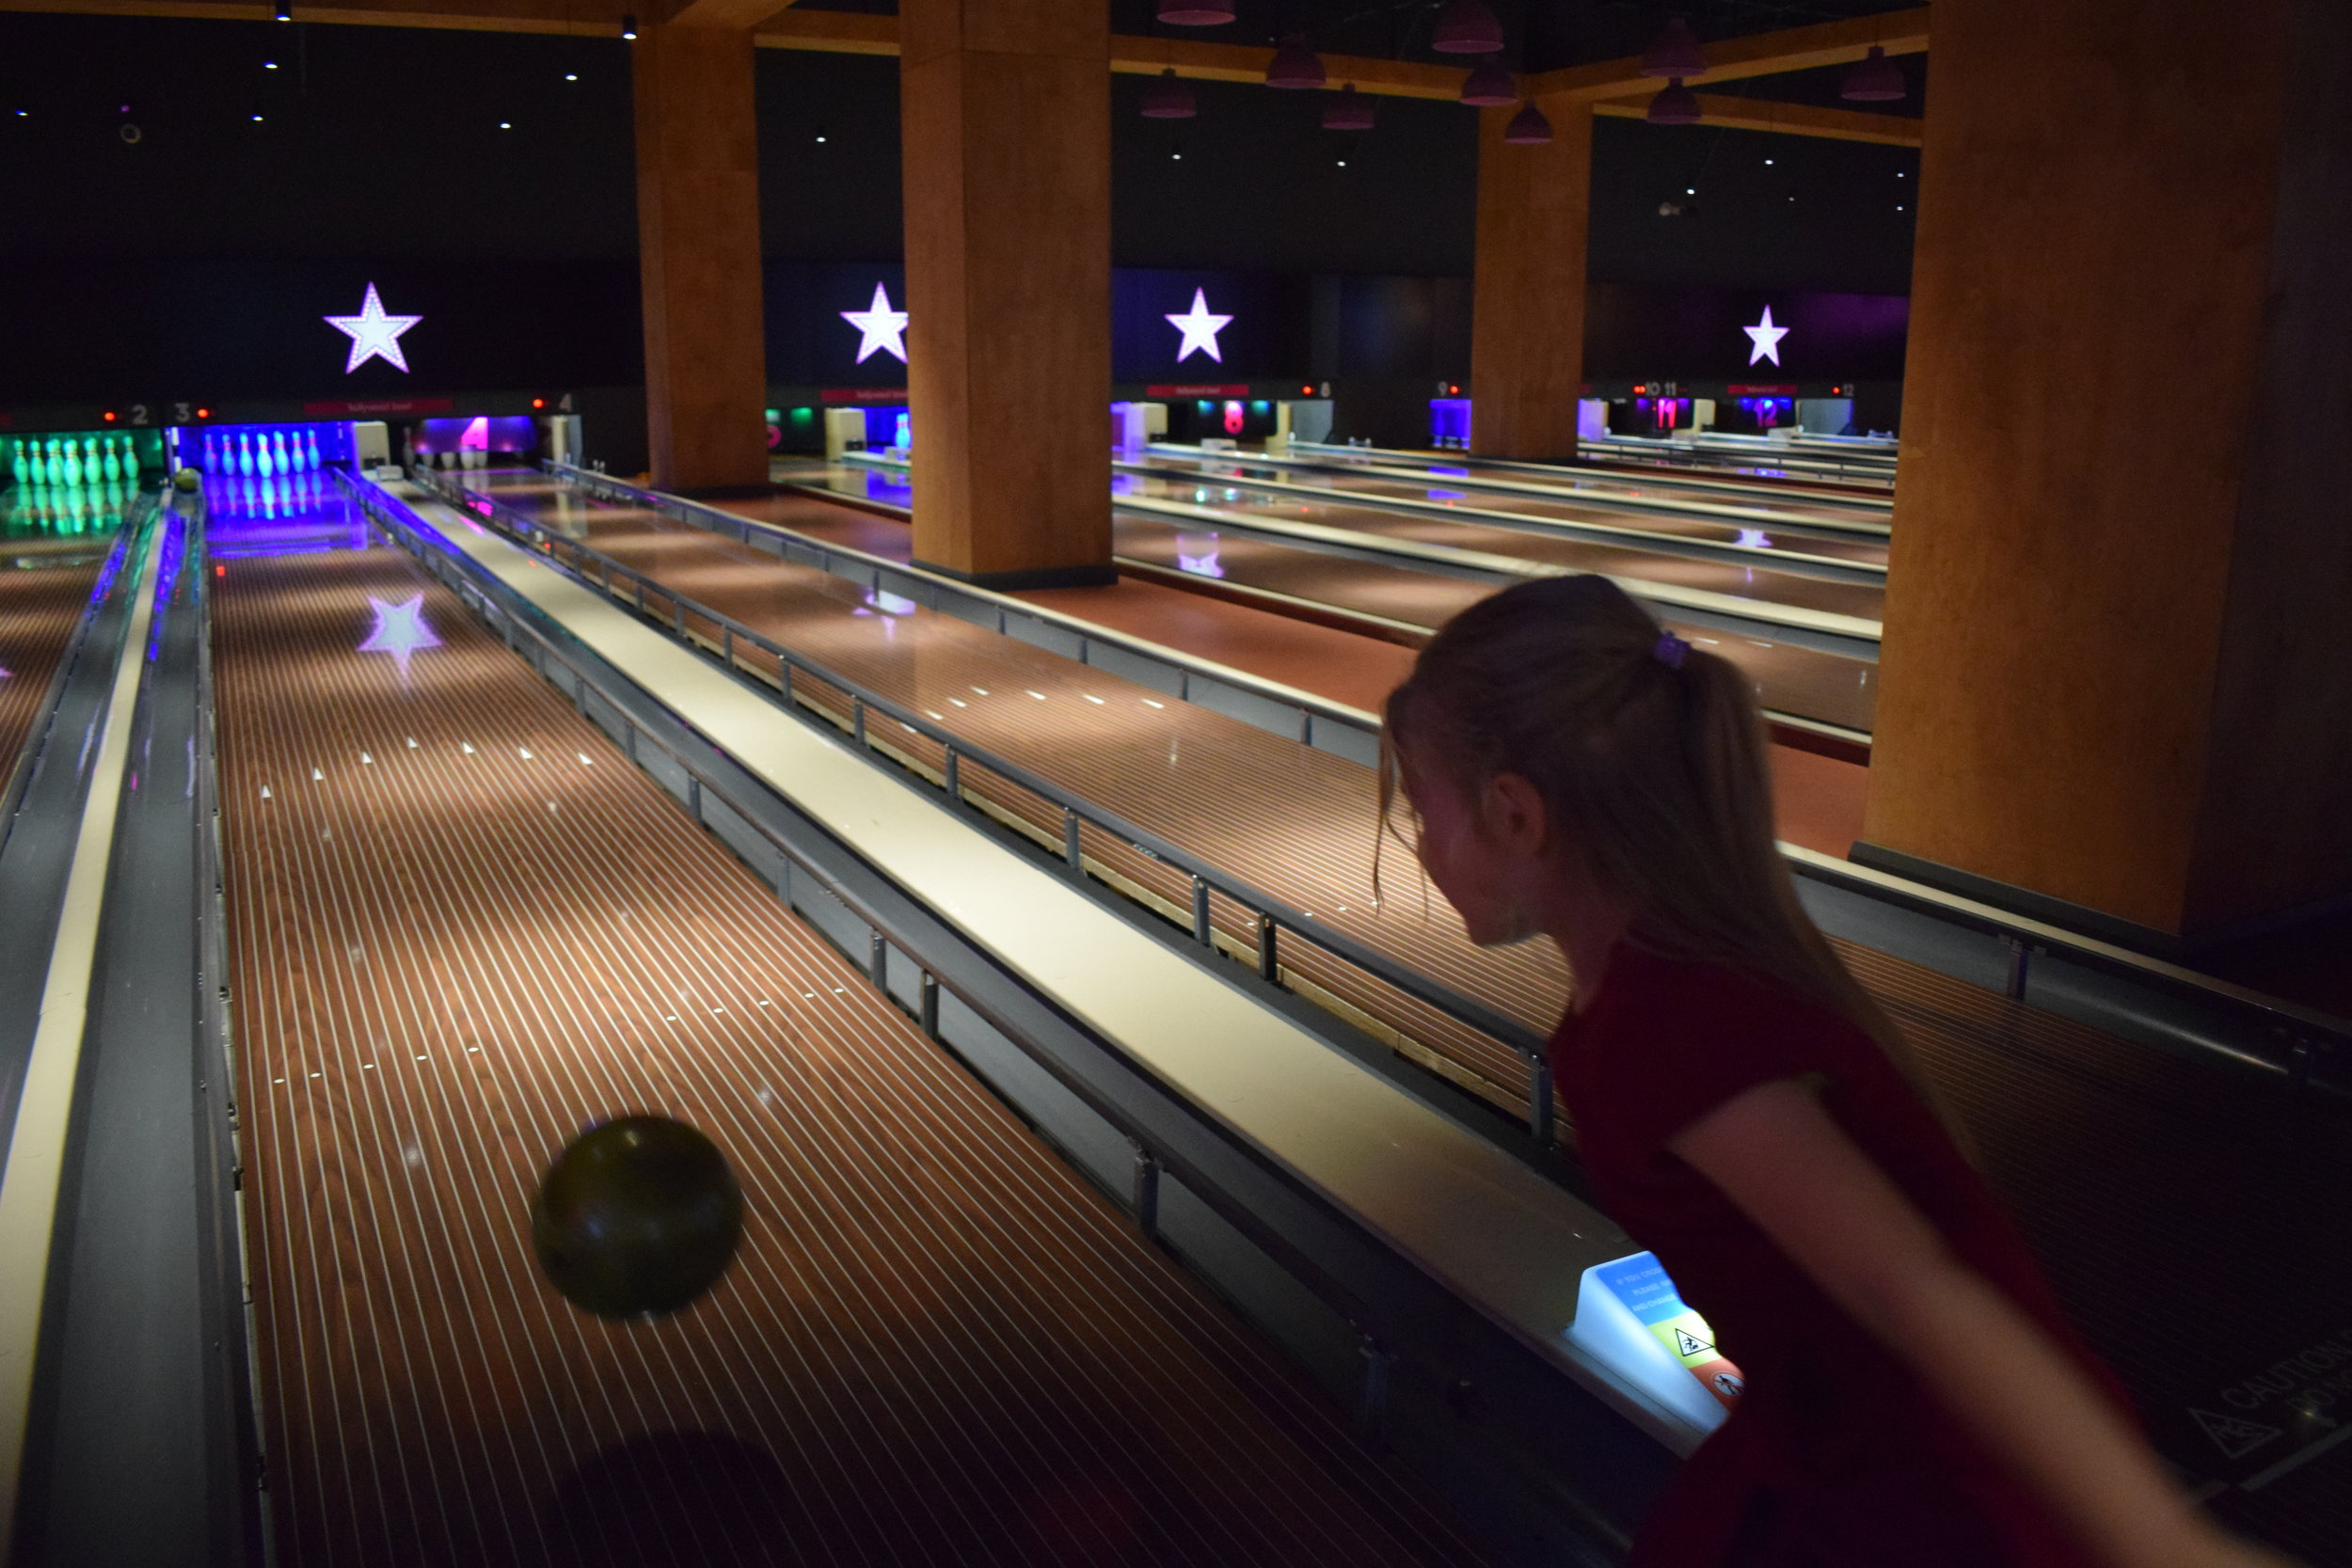 Squidgy bowling at Hollywood Bowl, Intu Watford